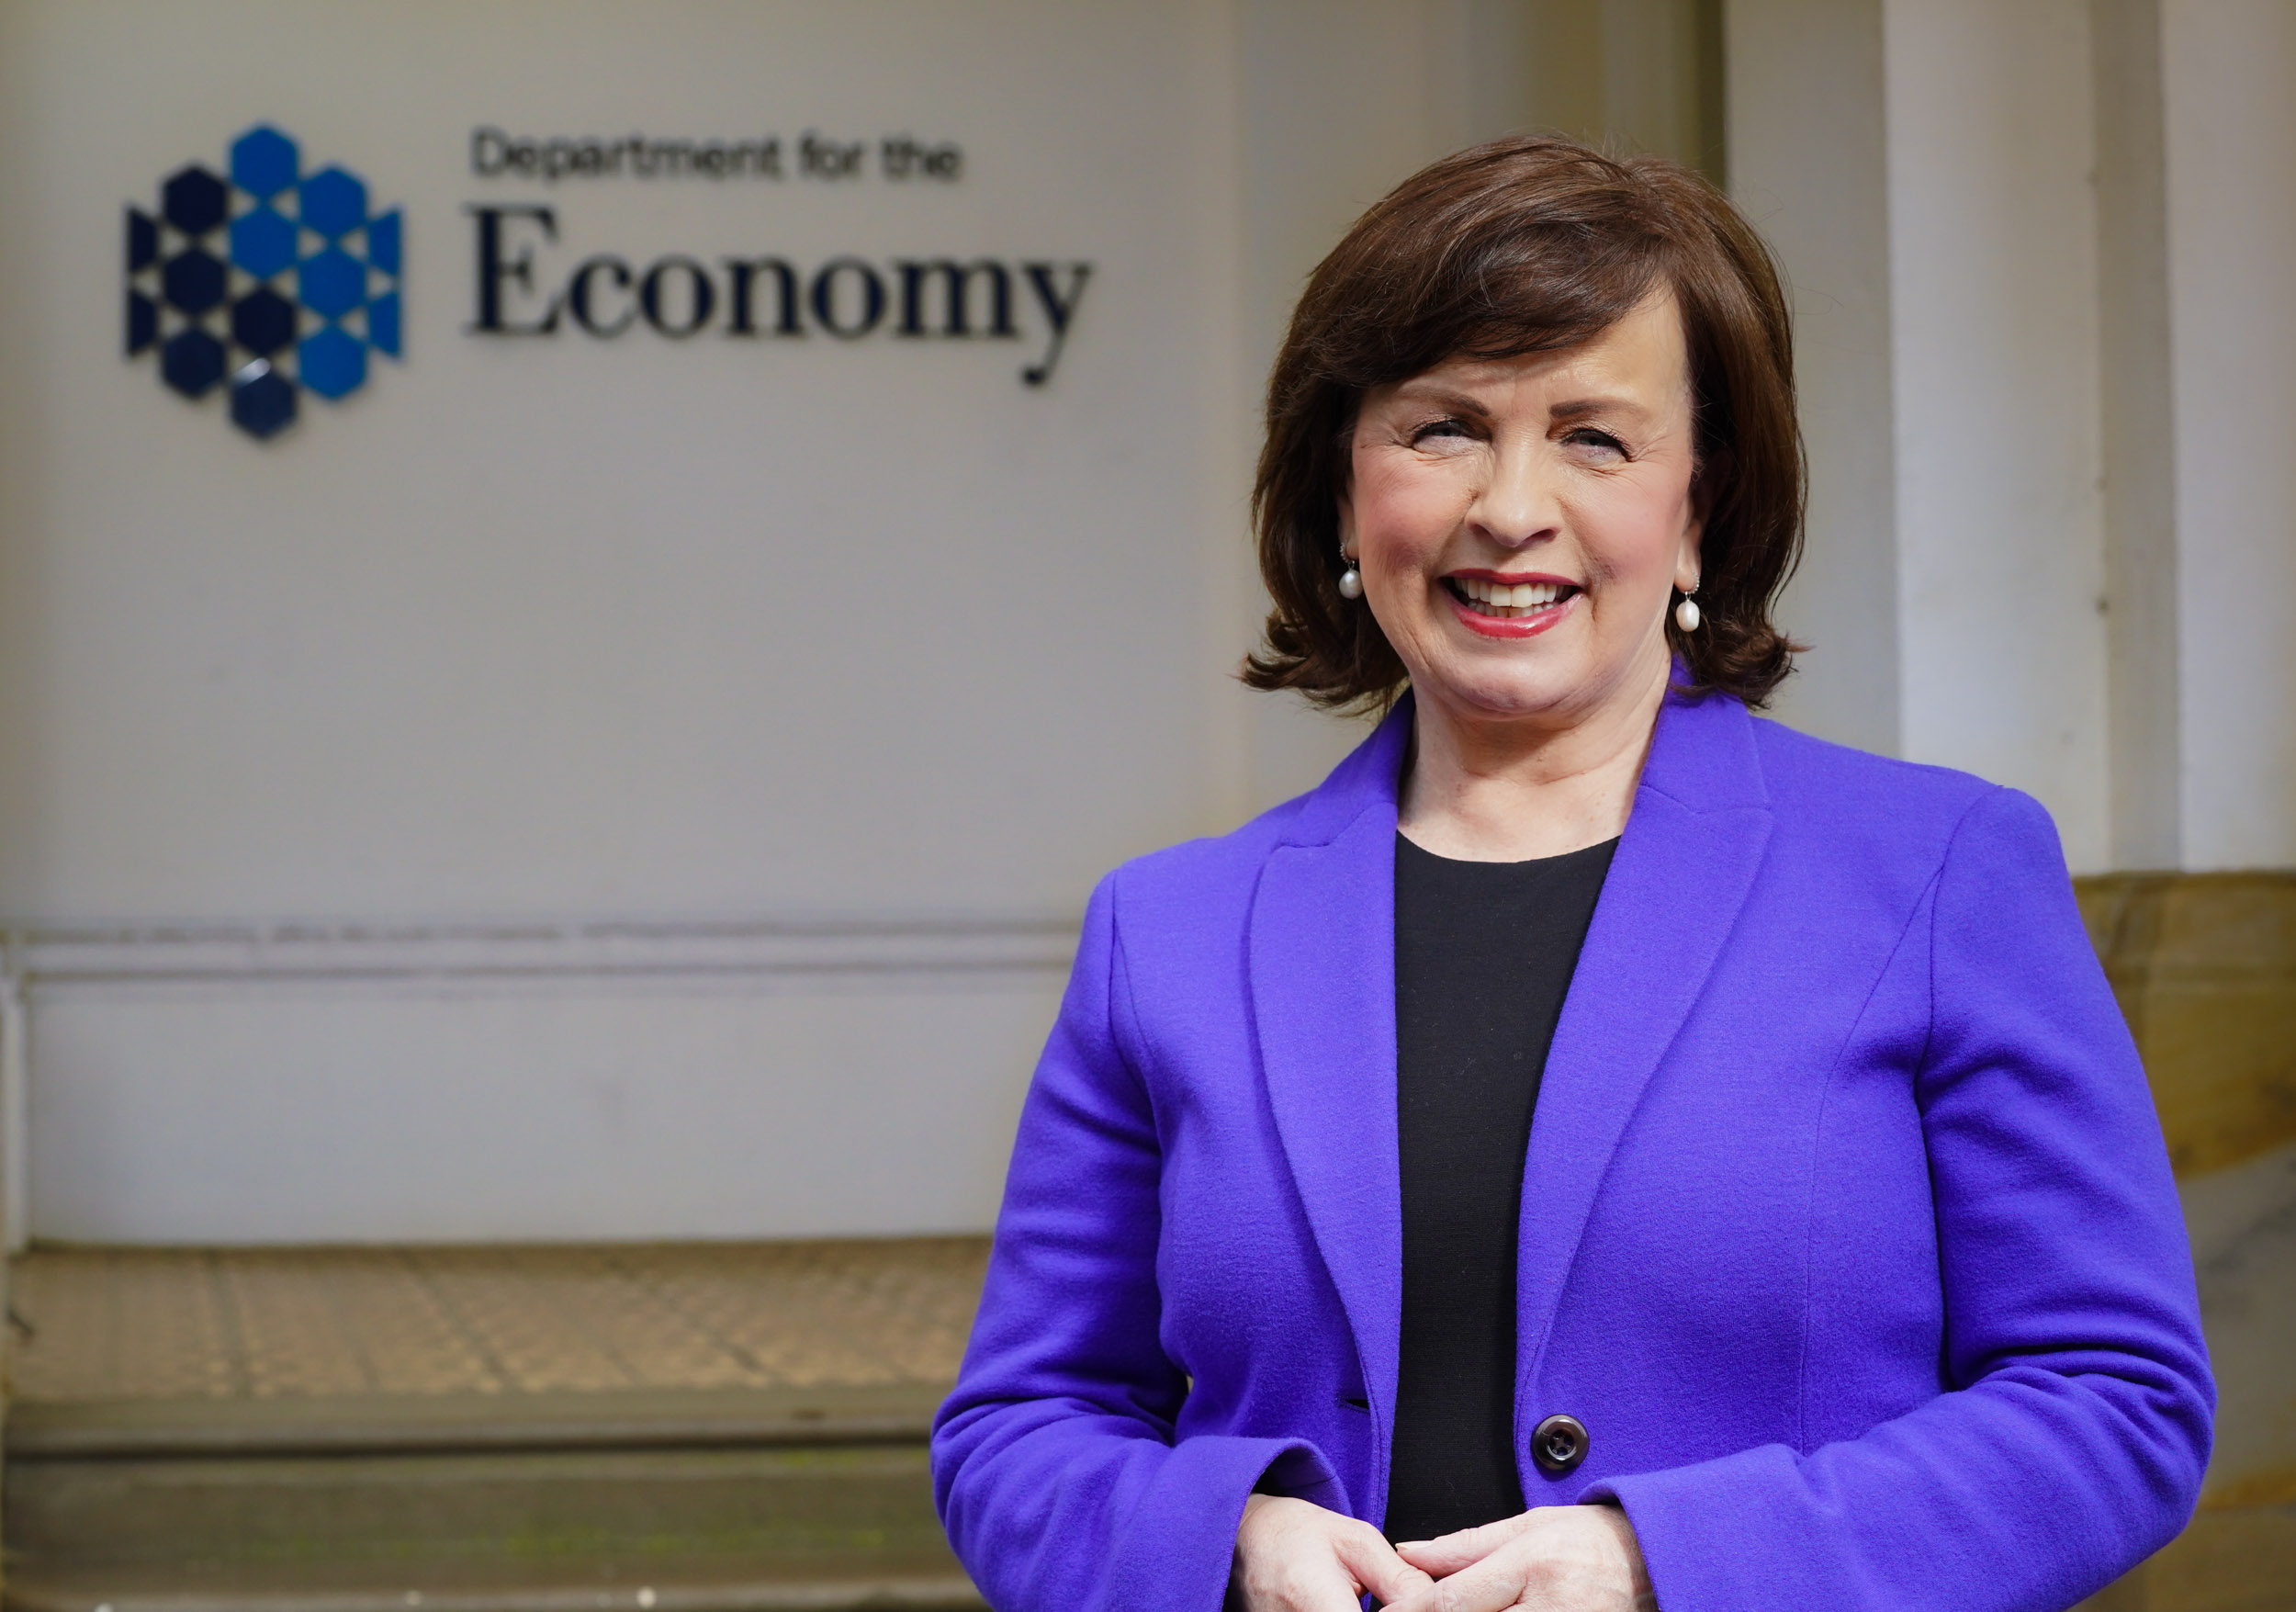 Minister announces business support schemes extended to cover new period of restrictions